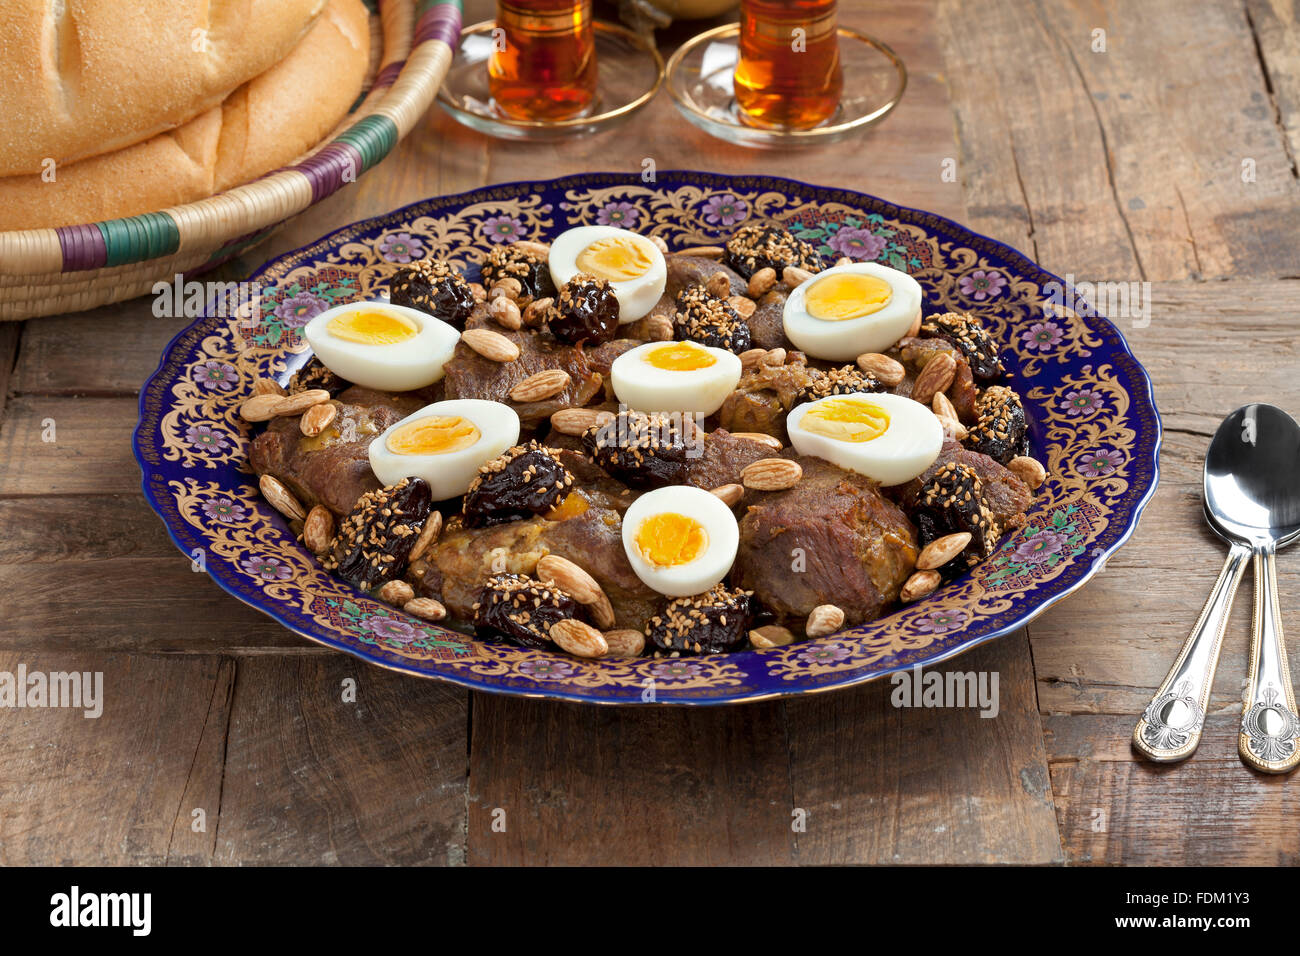 Moroccan festivity dish with meat, plums,almonds and eggs - Stock Image